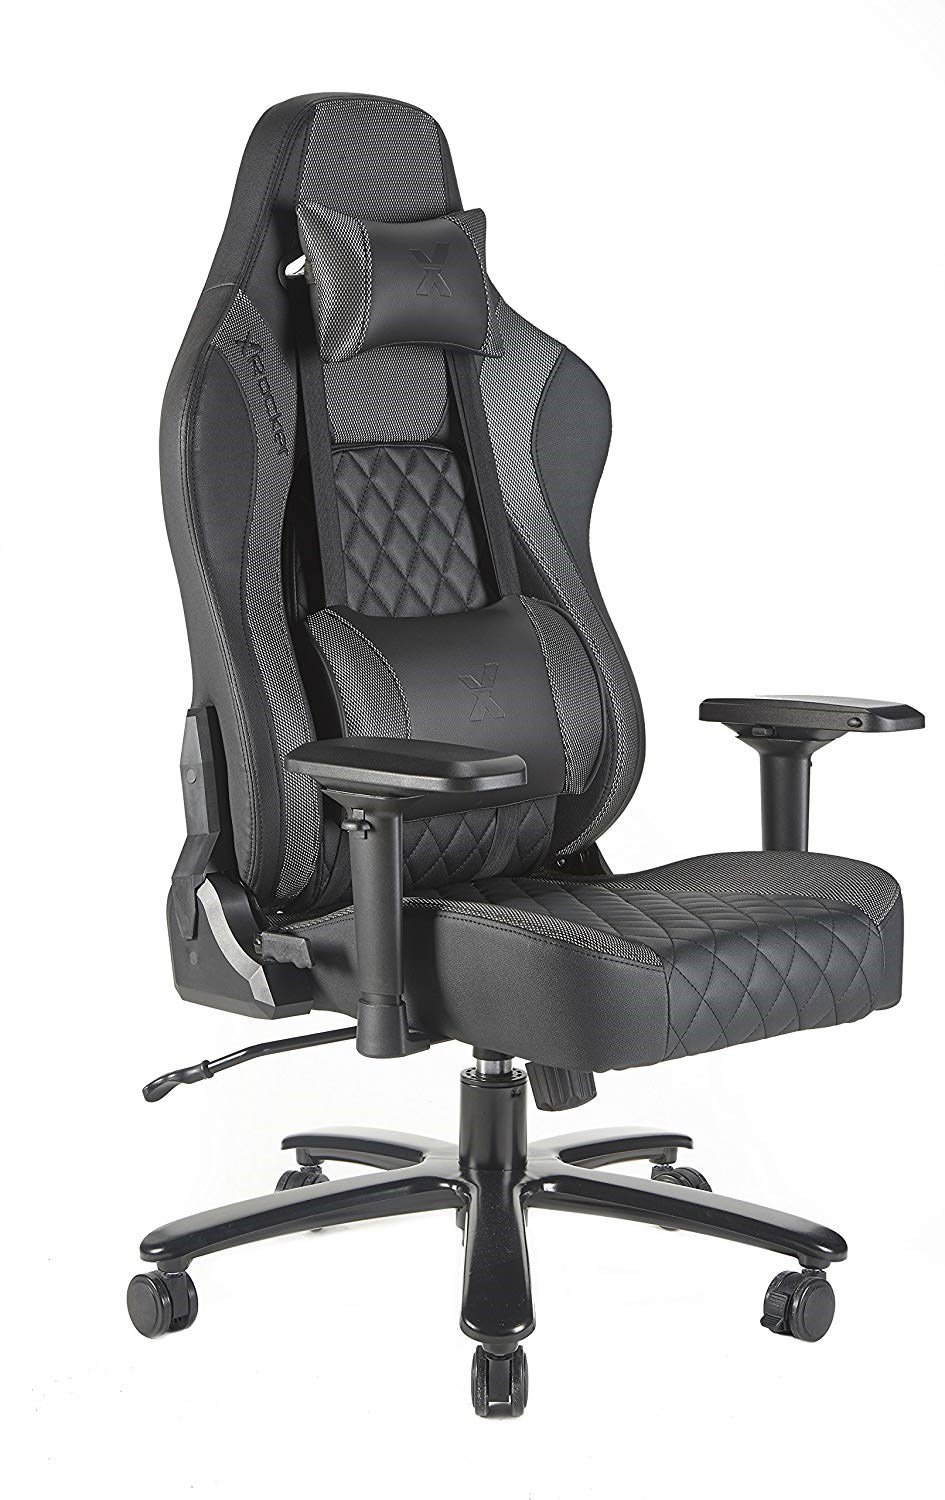 DXRACER DE62 computer eSports chair office swivel chair